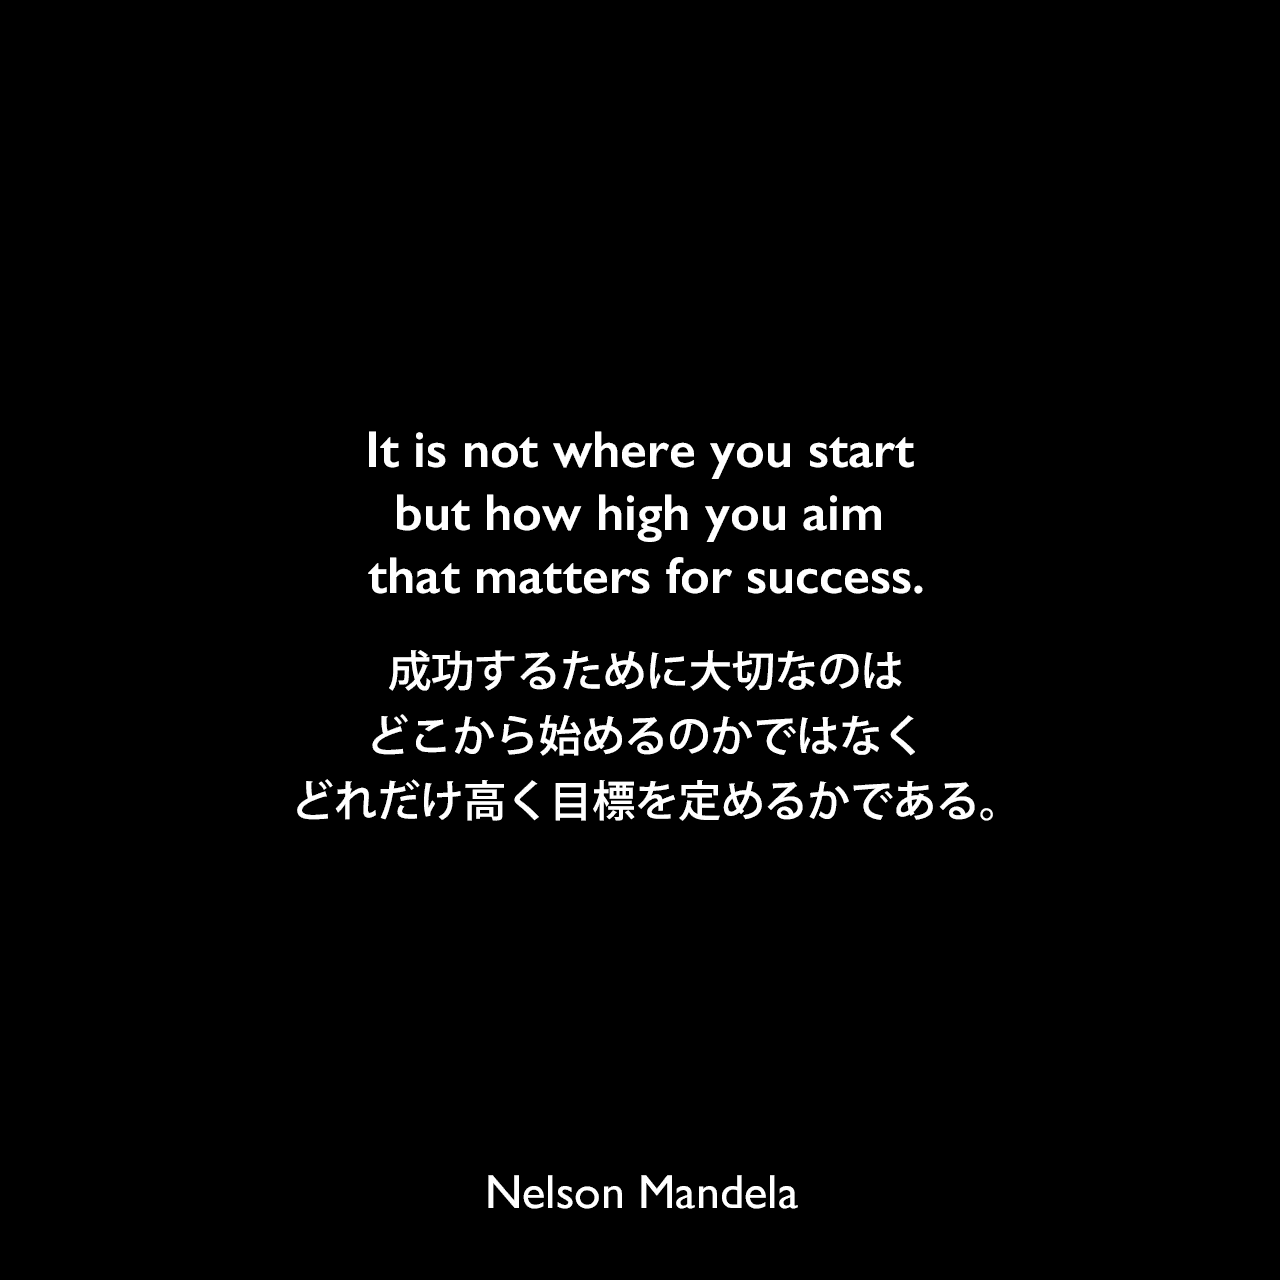 It is not where you start but how high you aim that matters for success.成功するために大切なのは、どこから始めるのかではなく、どれだけ高く目標を定めるかである。Nelson Mandela